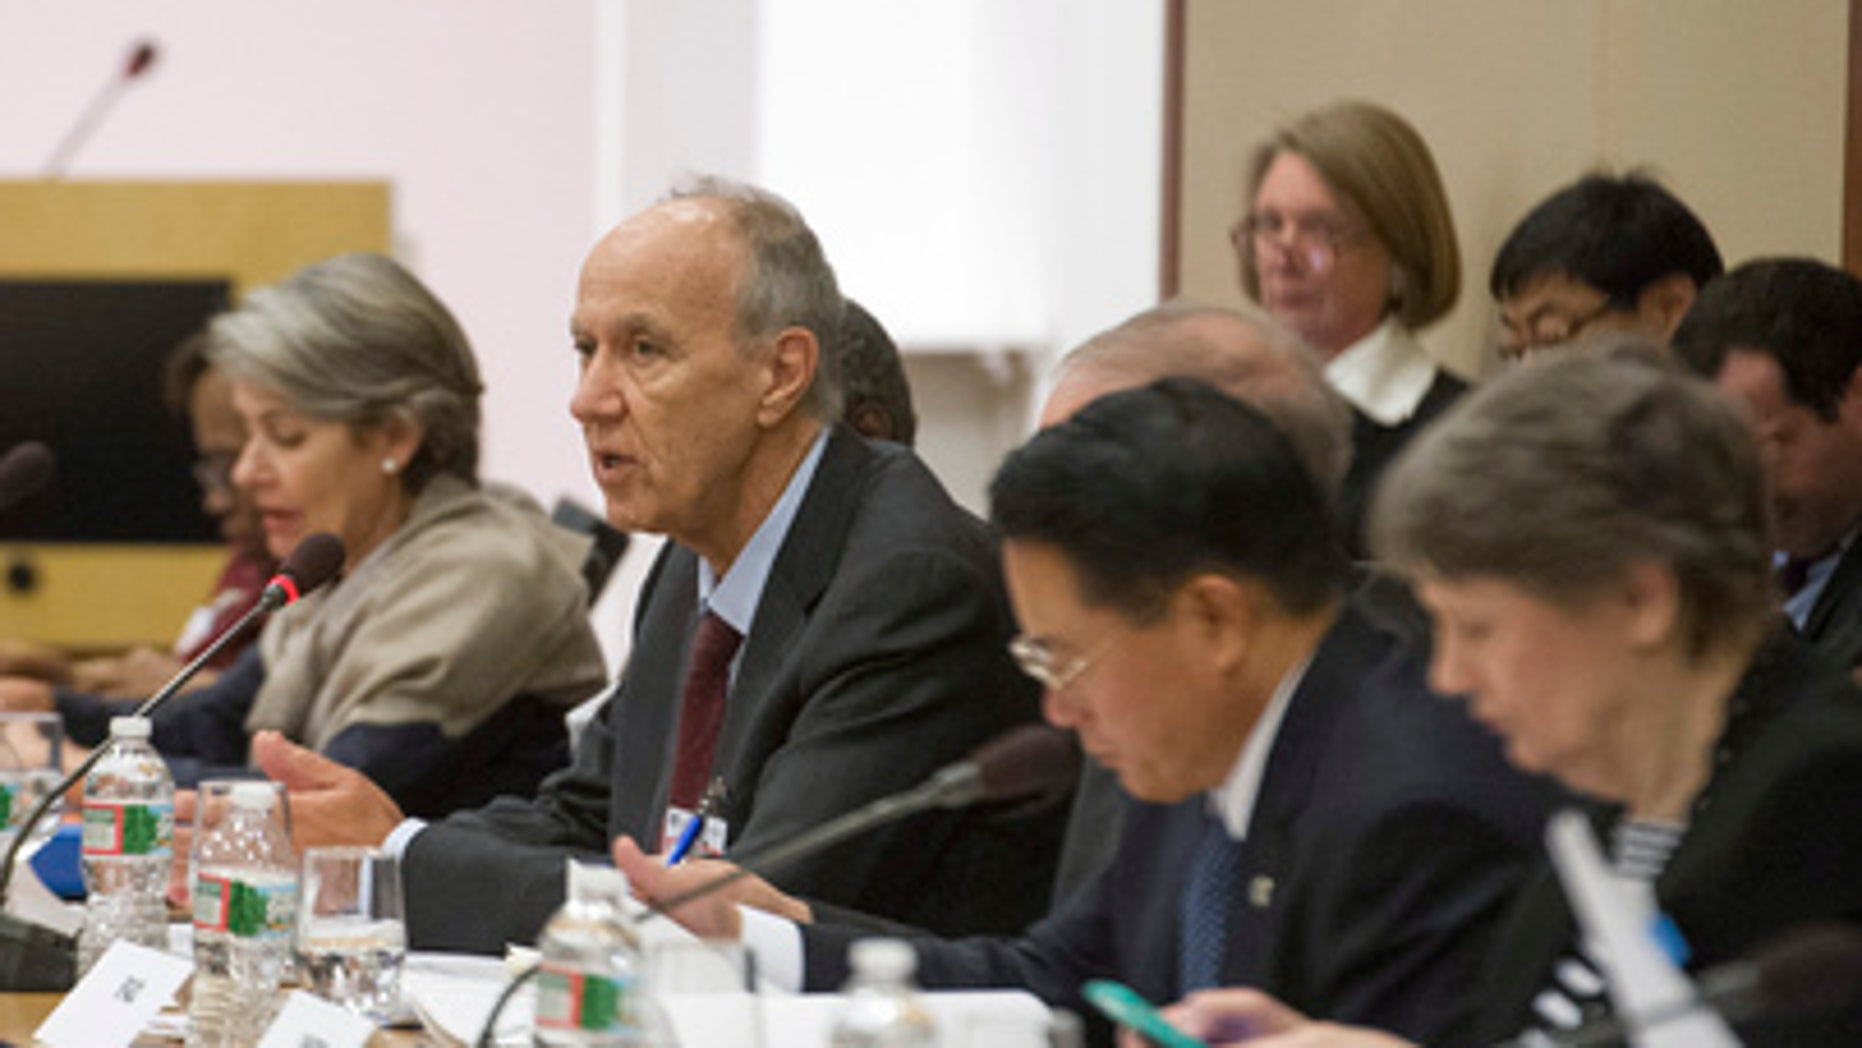 Francis Gurry, center, director-general of the World Intellectual Property Organization (WIPO), addresses the United Nations Chief Executives Board (CEB) in Washington, D.C., at a November 2014 meeting. (Credit: UN Photo/Eskinder Debebe)